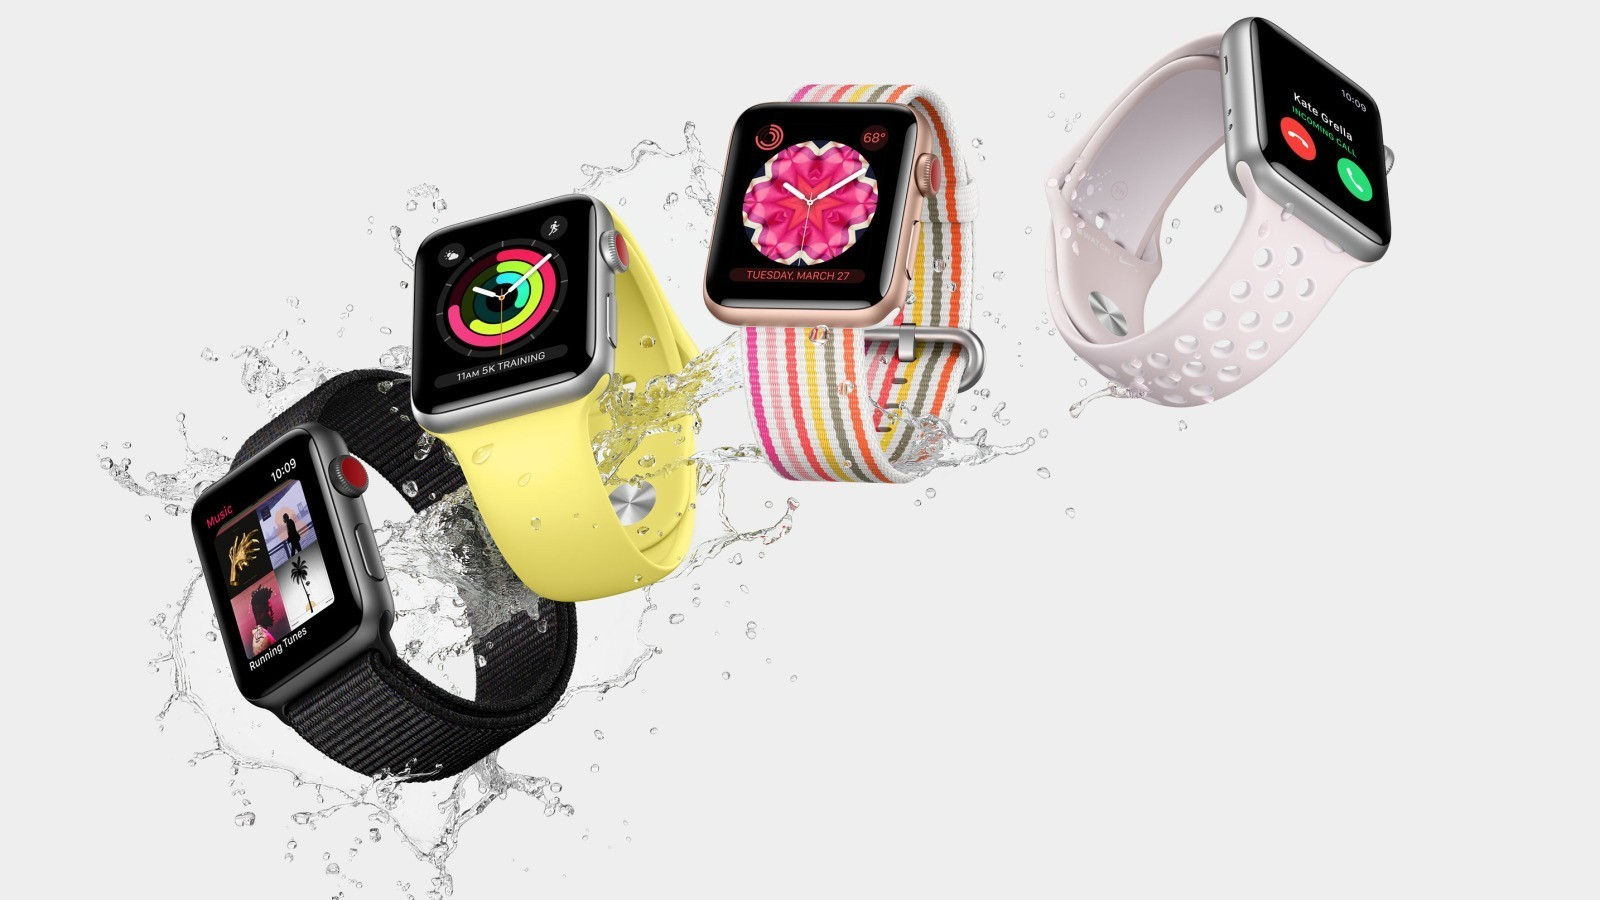 KGI: New Apple Watch models later this year with new design, ~15% bigger display